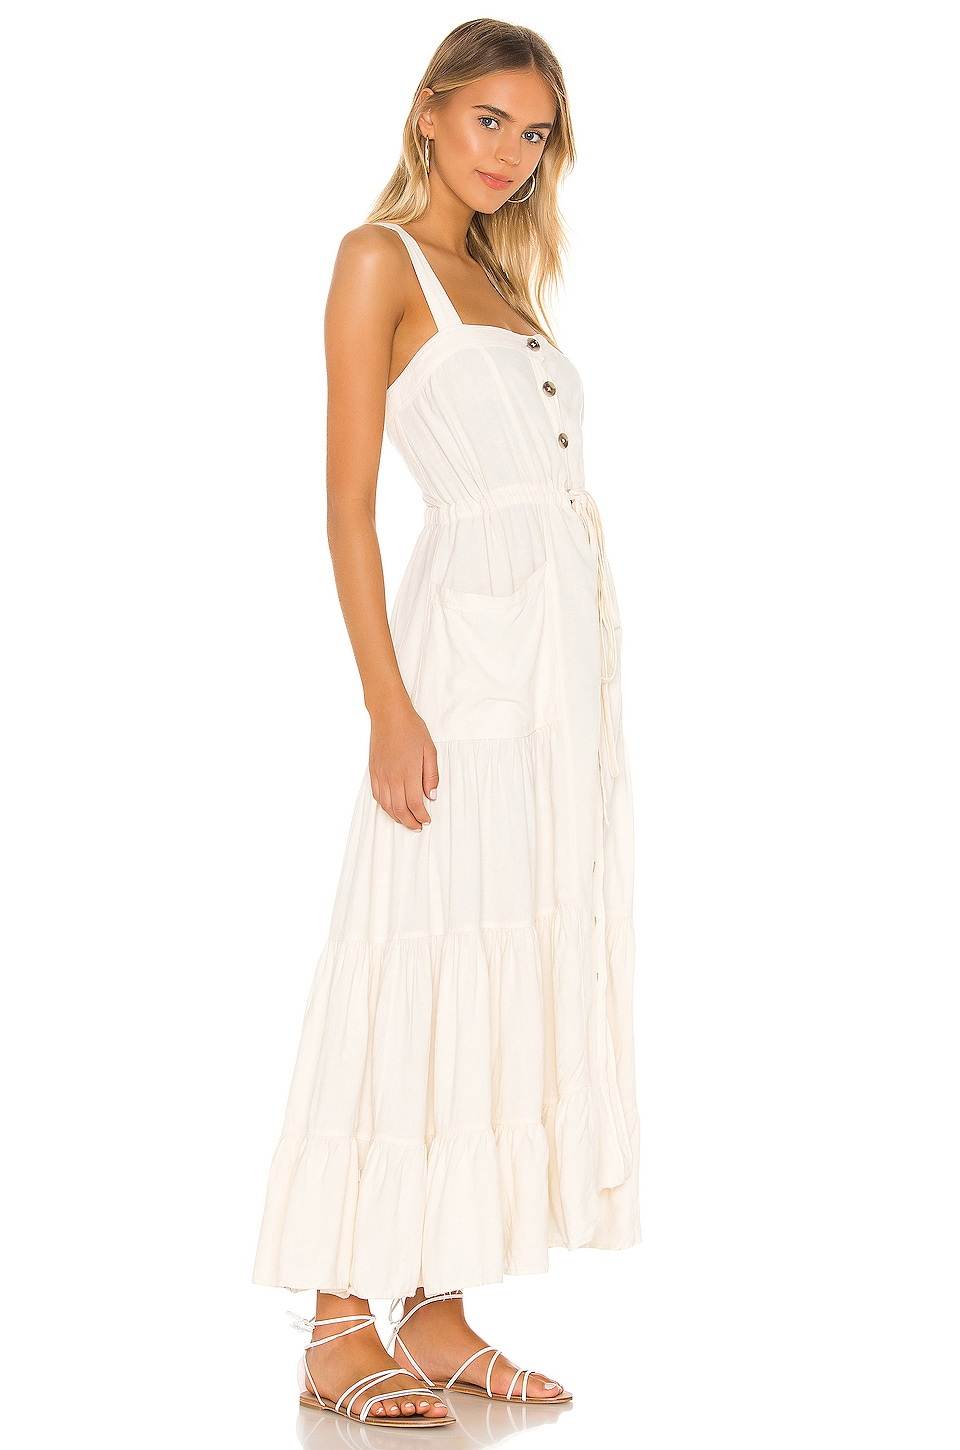 Catch The Breeze Midi Dress, view 2, click to view large image.